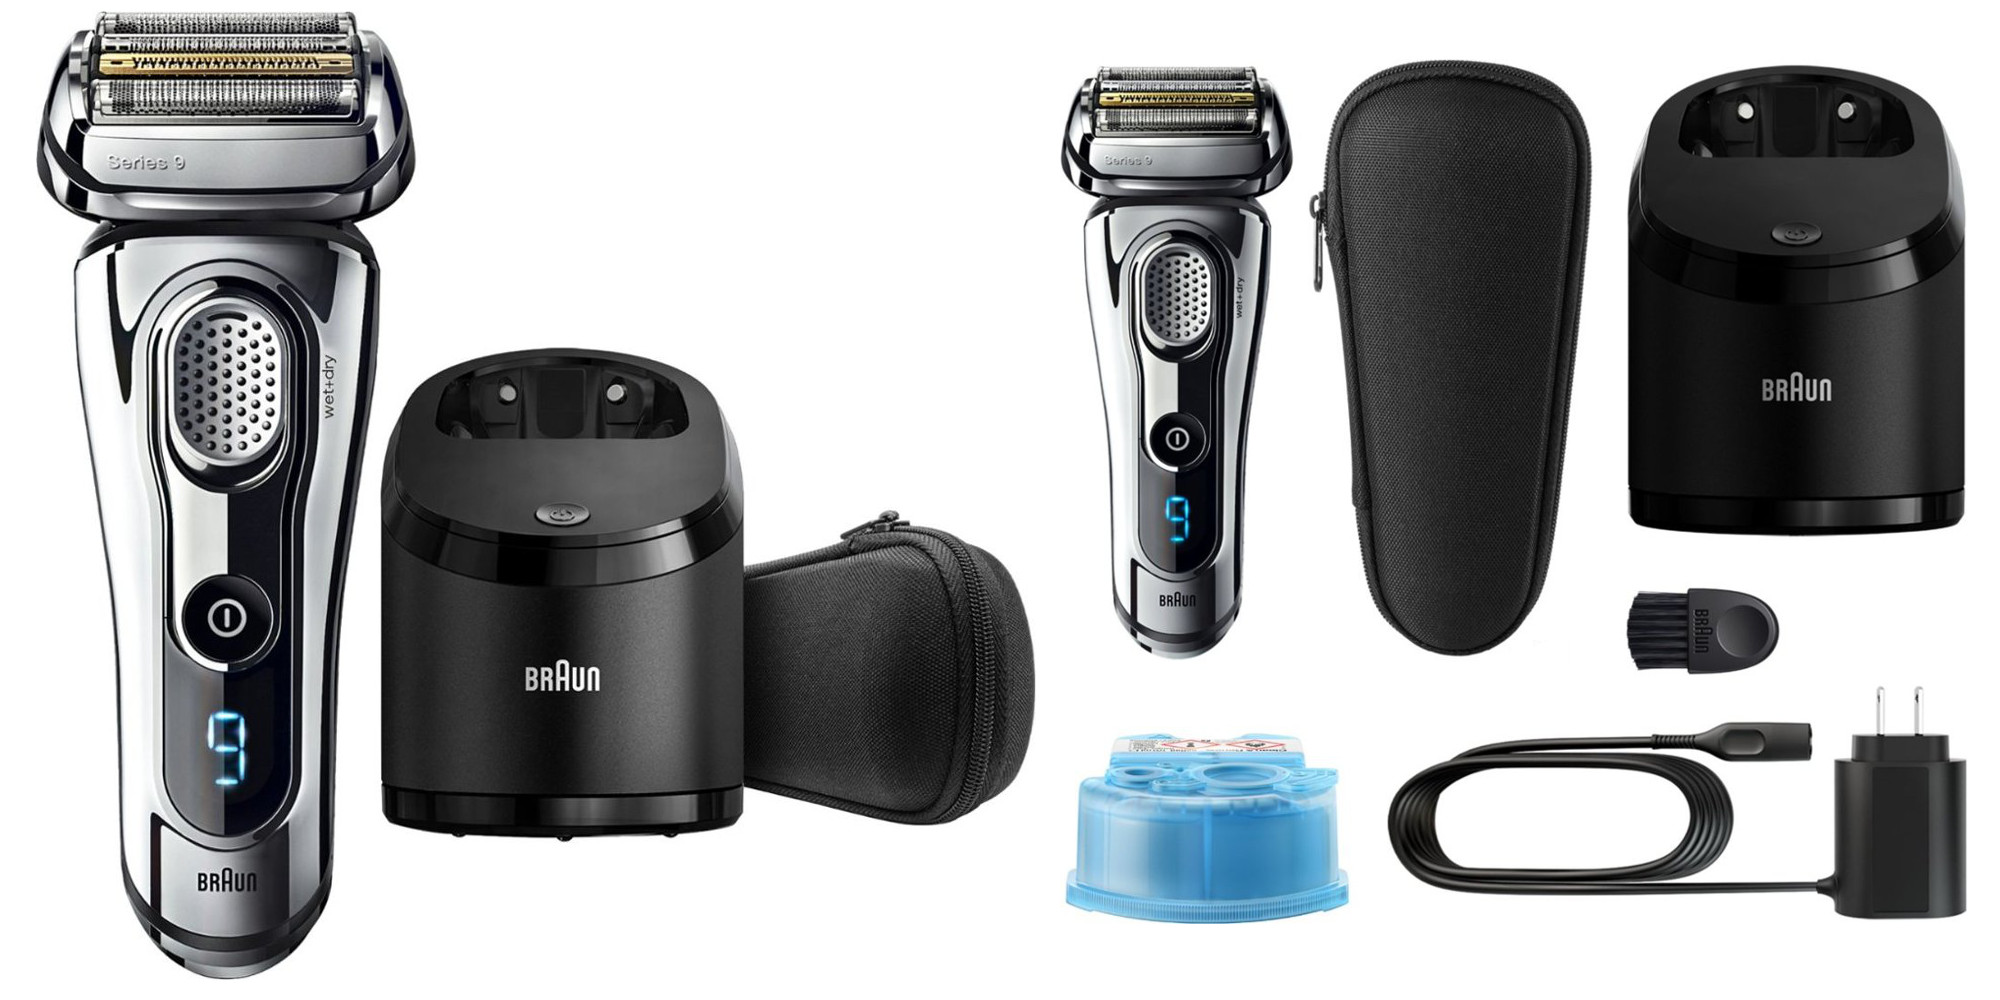 Braun's Series 9 Wet/Dry Shaver w/ stand & SmartPlug charging is now $100 off for today only